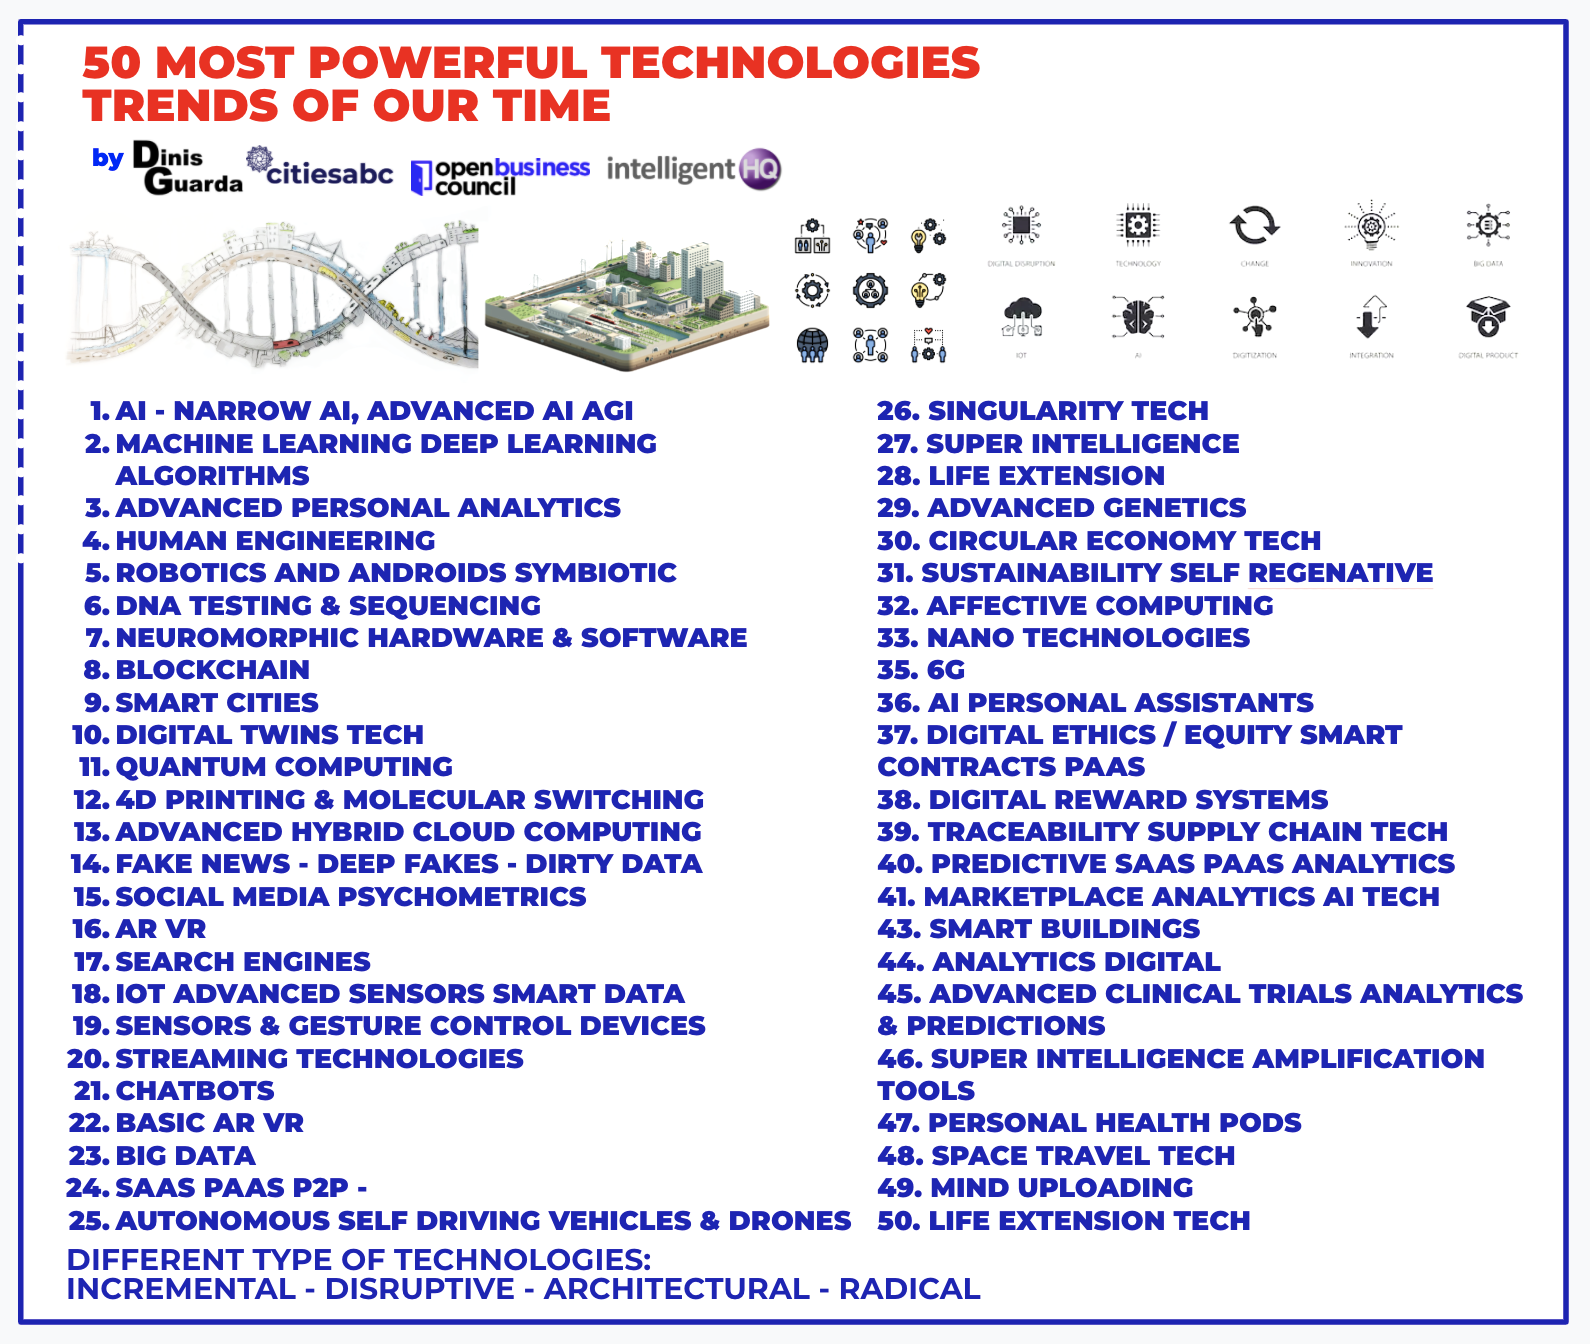 50 Most Powerful Technologies Trends of our Time, infographic ressearch by Dinis Guarda